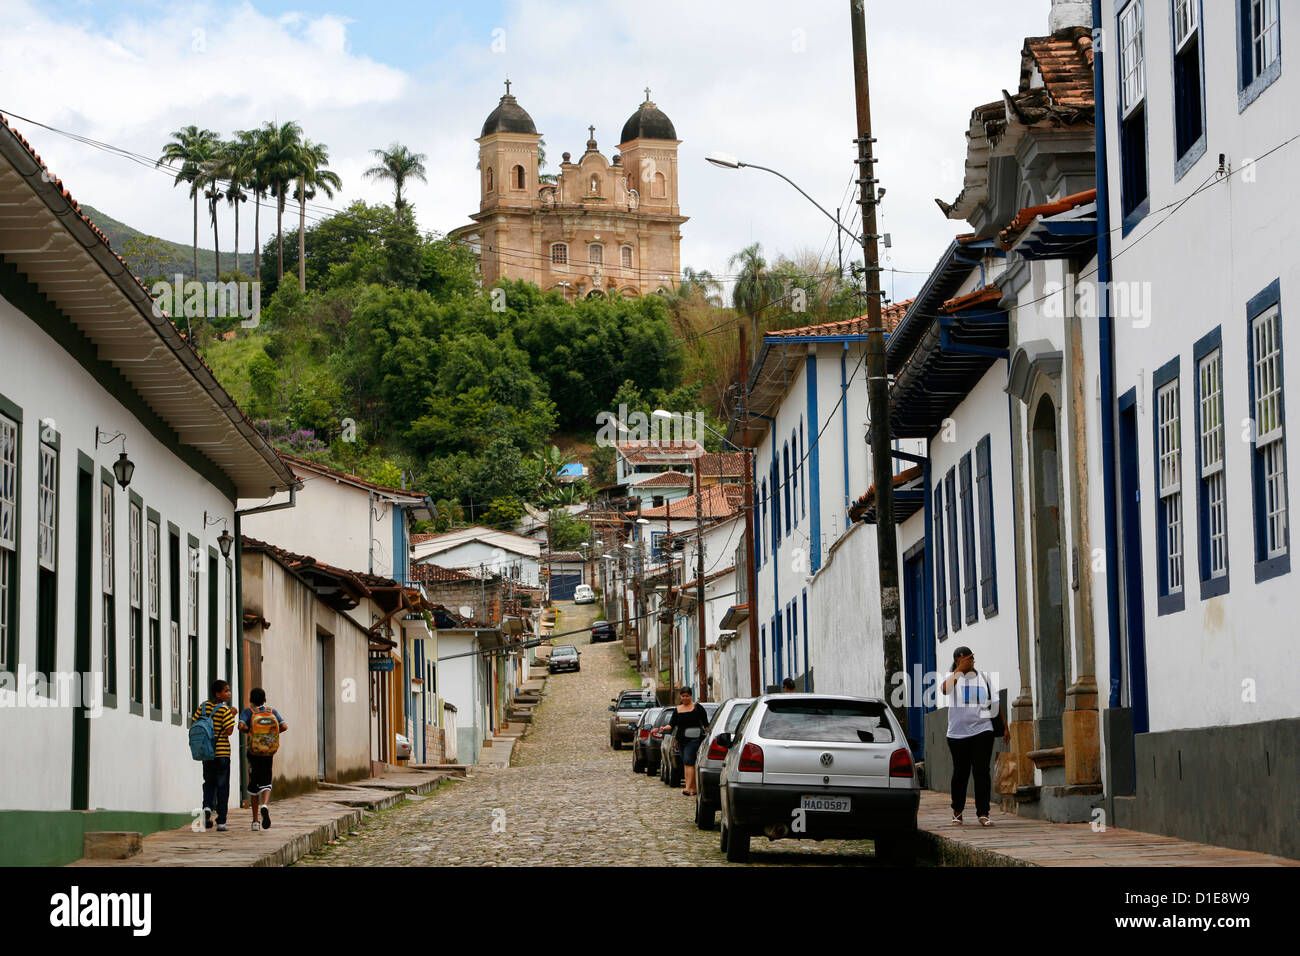 Street scene with the Basilica de Sao Pedro dos Clerigos at the end, Mariana, Minas Gerais, Brazil, South America - Stock Image